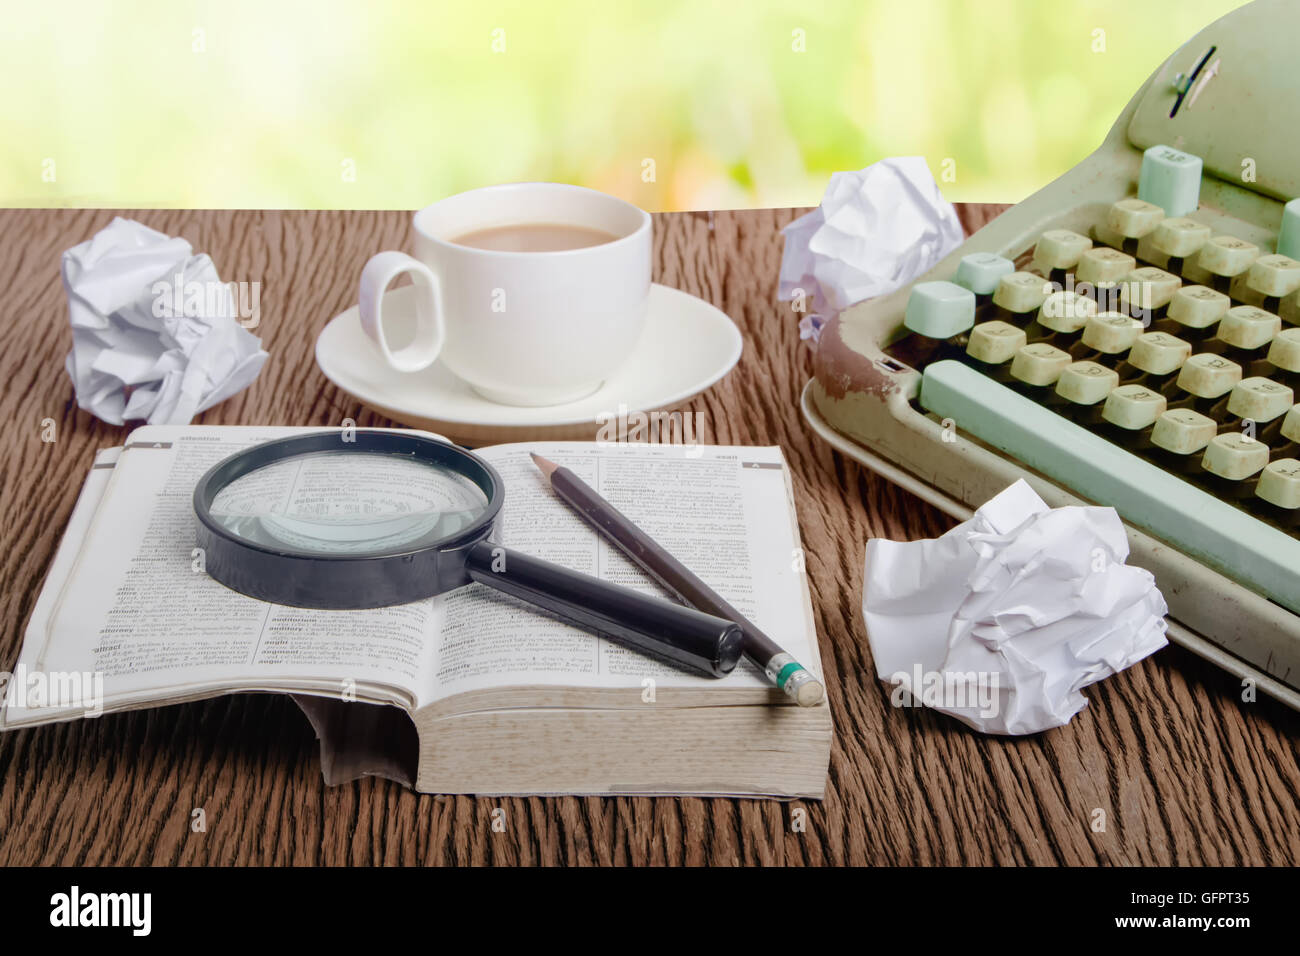 The thai dictionary consider under a magnifier on writer's desk with crumpled sheets around - Stock Image